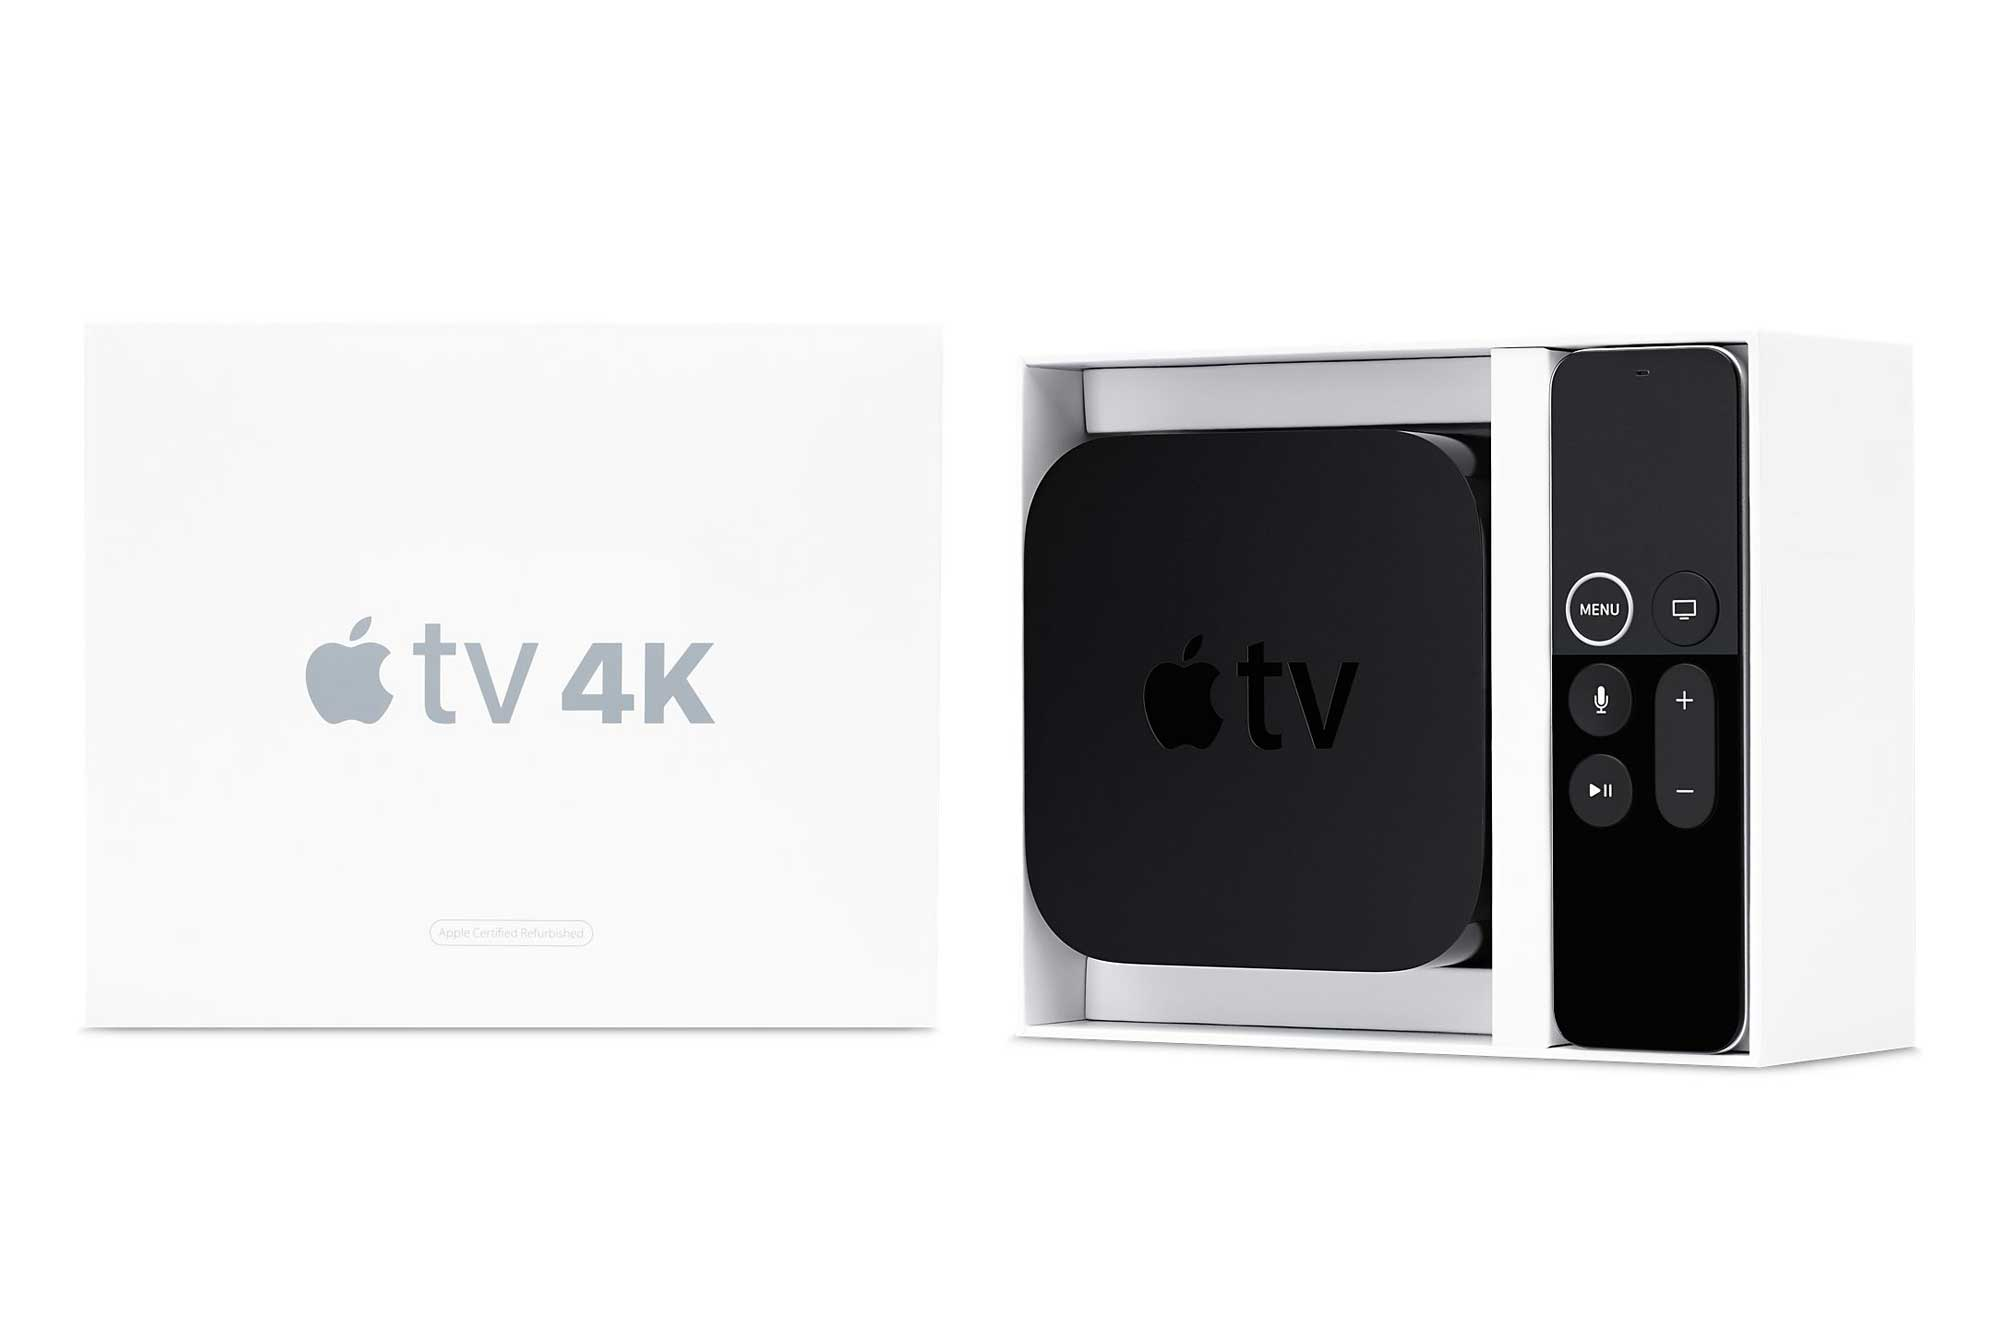 Apple TV 4K Certified Refurbished Model in White Box